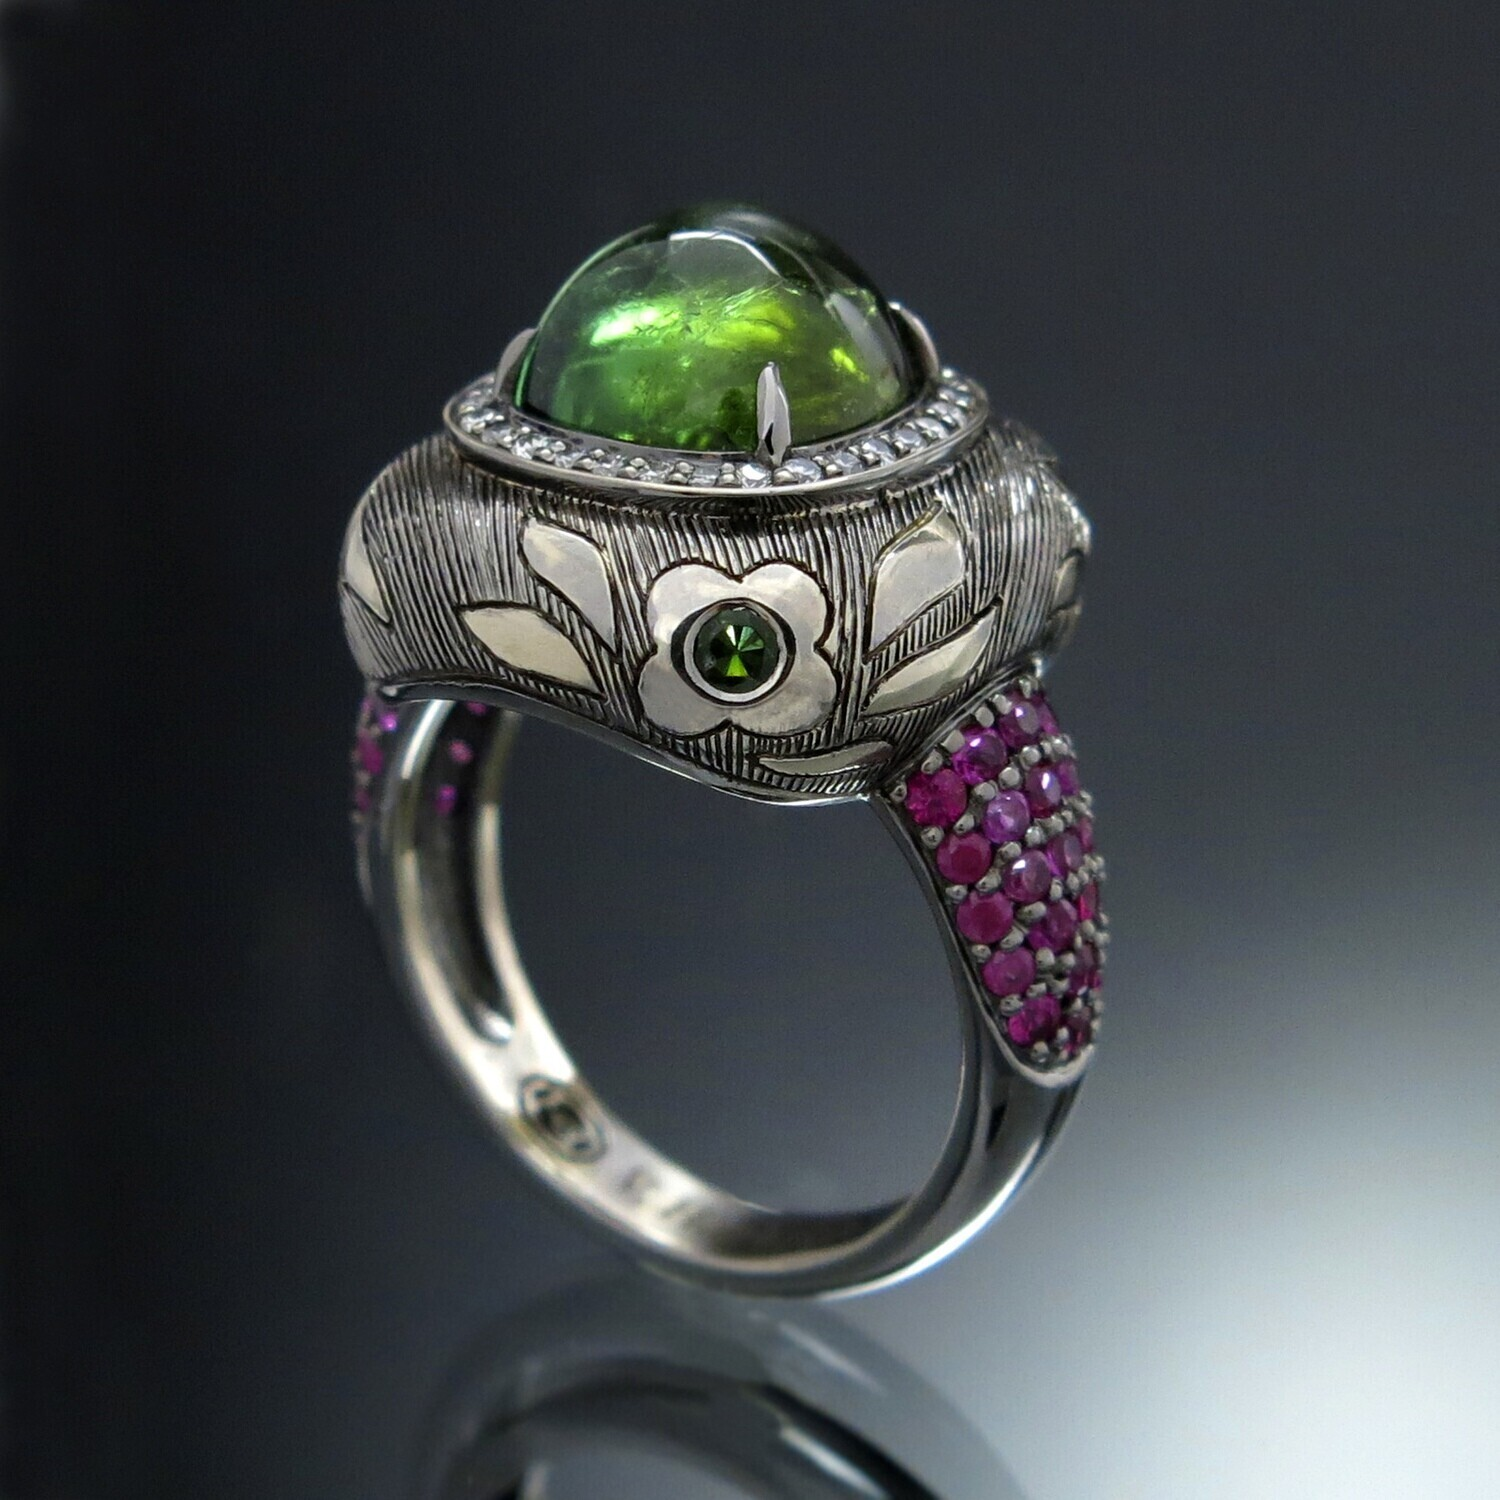 18K Gold Ring with Tourmaline, Diamonds and Rubies, VH001